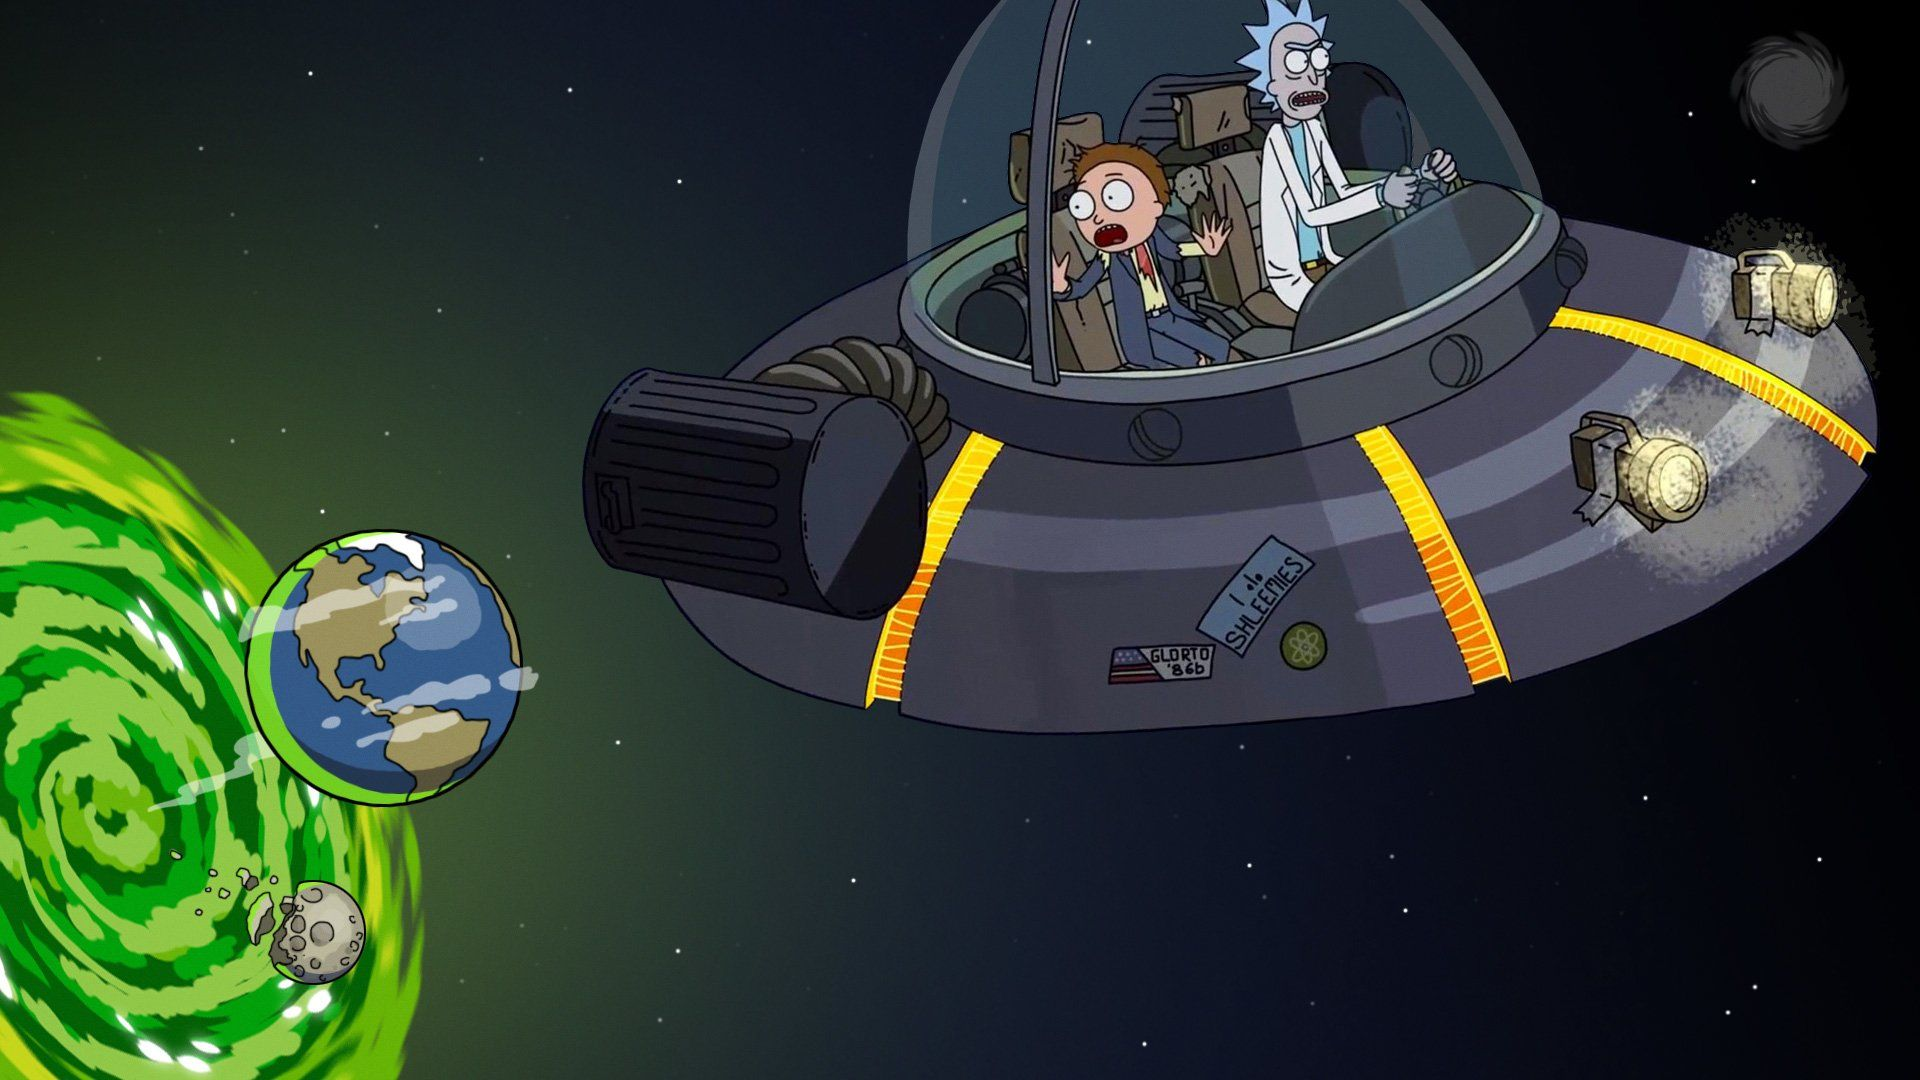 Tv Show Rick And Morty Rick Sanchez Morty Smith Spaceship